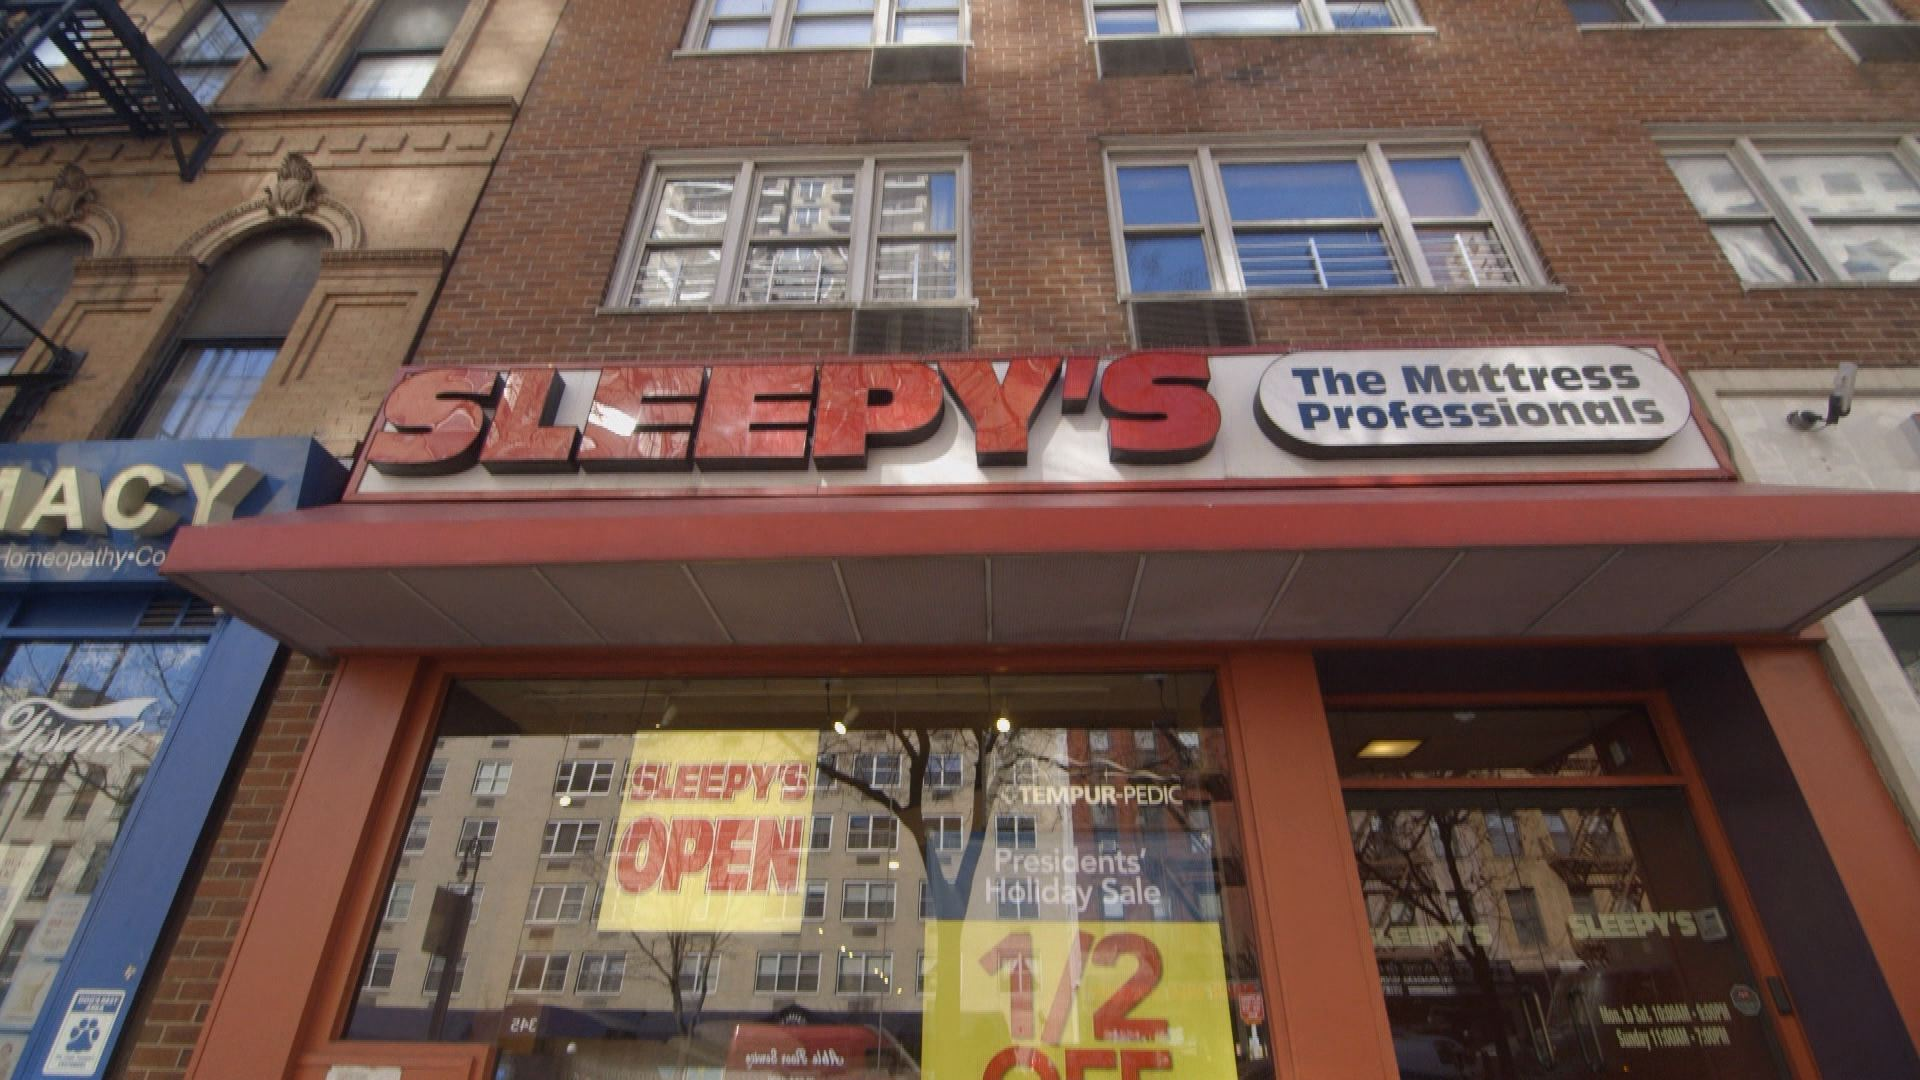 Why Are There So Many Sleepy S Mattress Stores Bloomberg